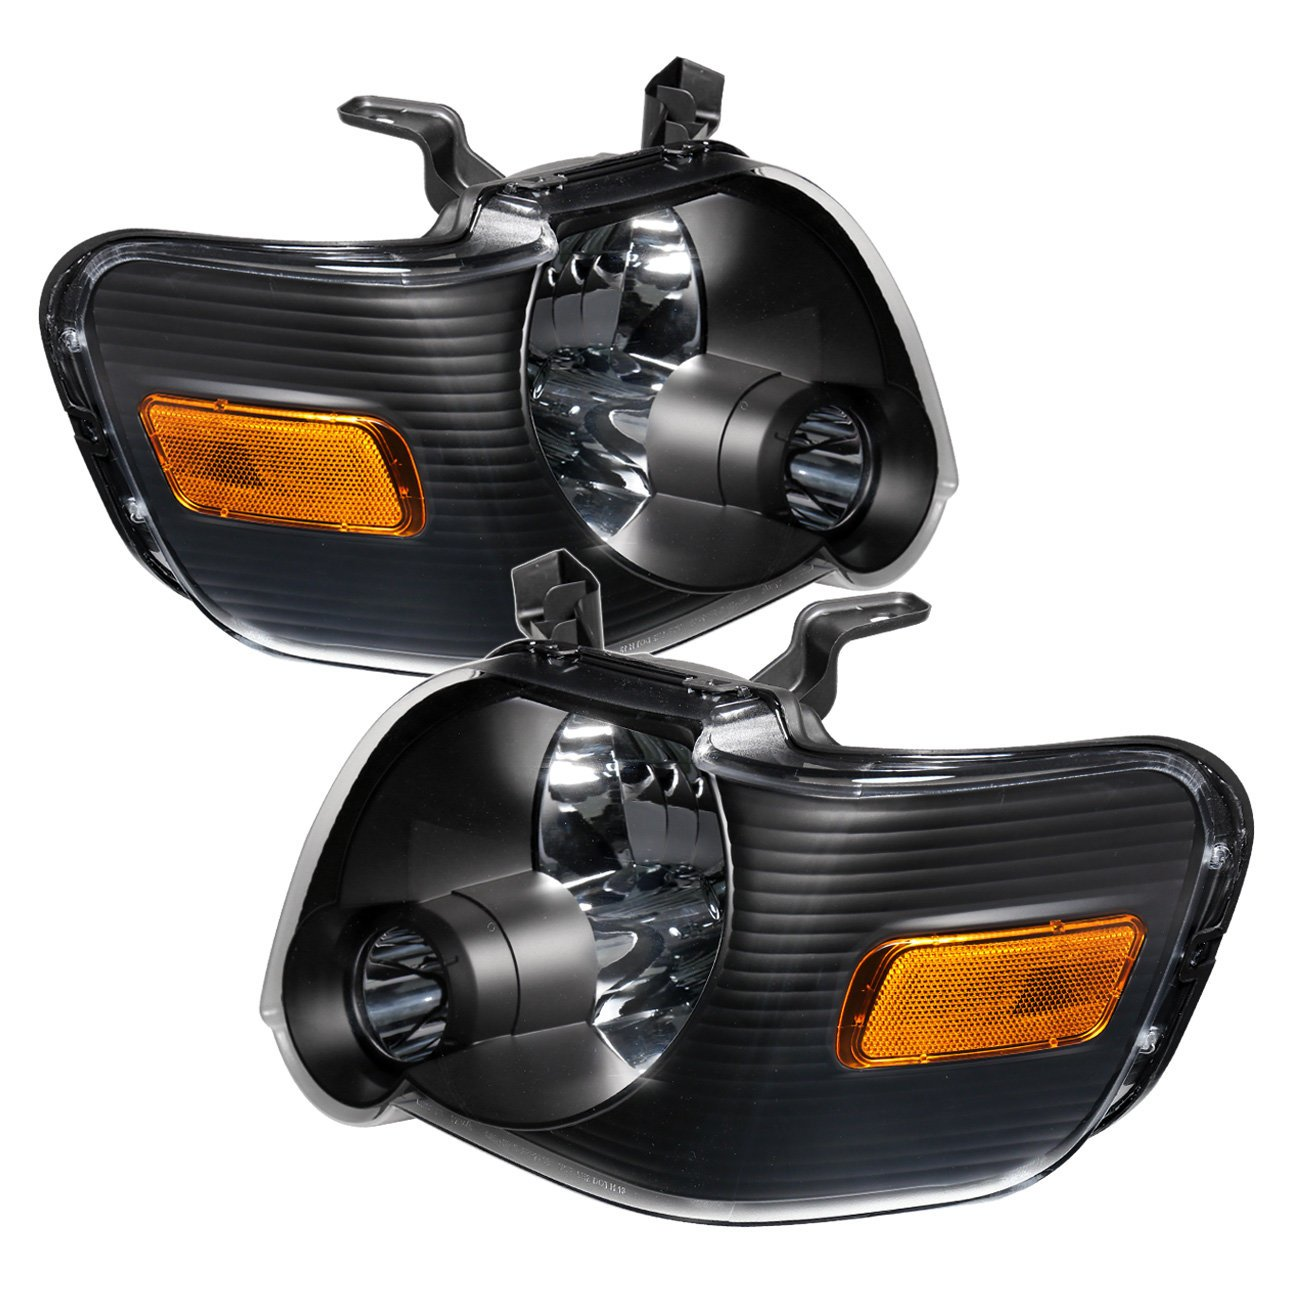 Fits Ford Explorer Sport Trac Front Driving Black Housing Amber Reflector Headlight Head Lamp Upgrade Replacement by AJP Distributors (Image #4)